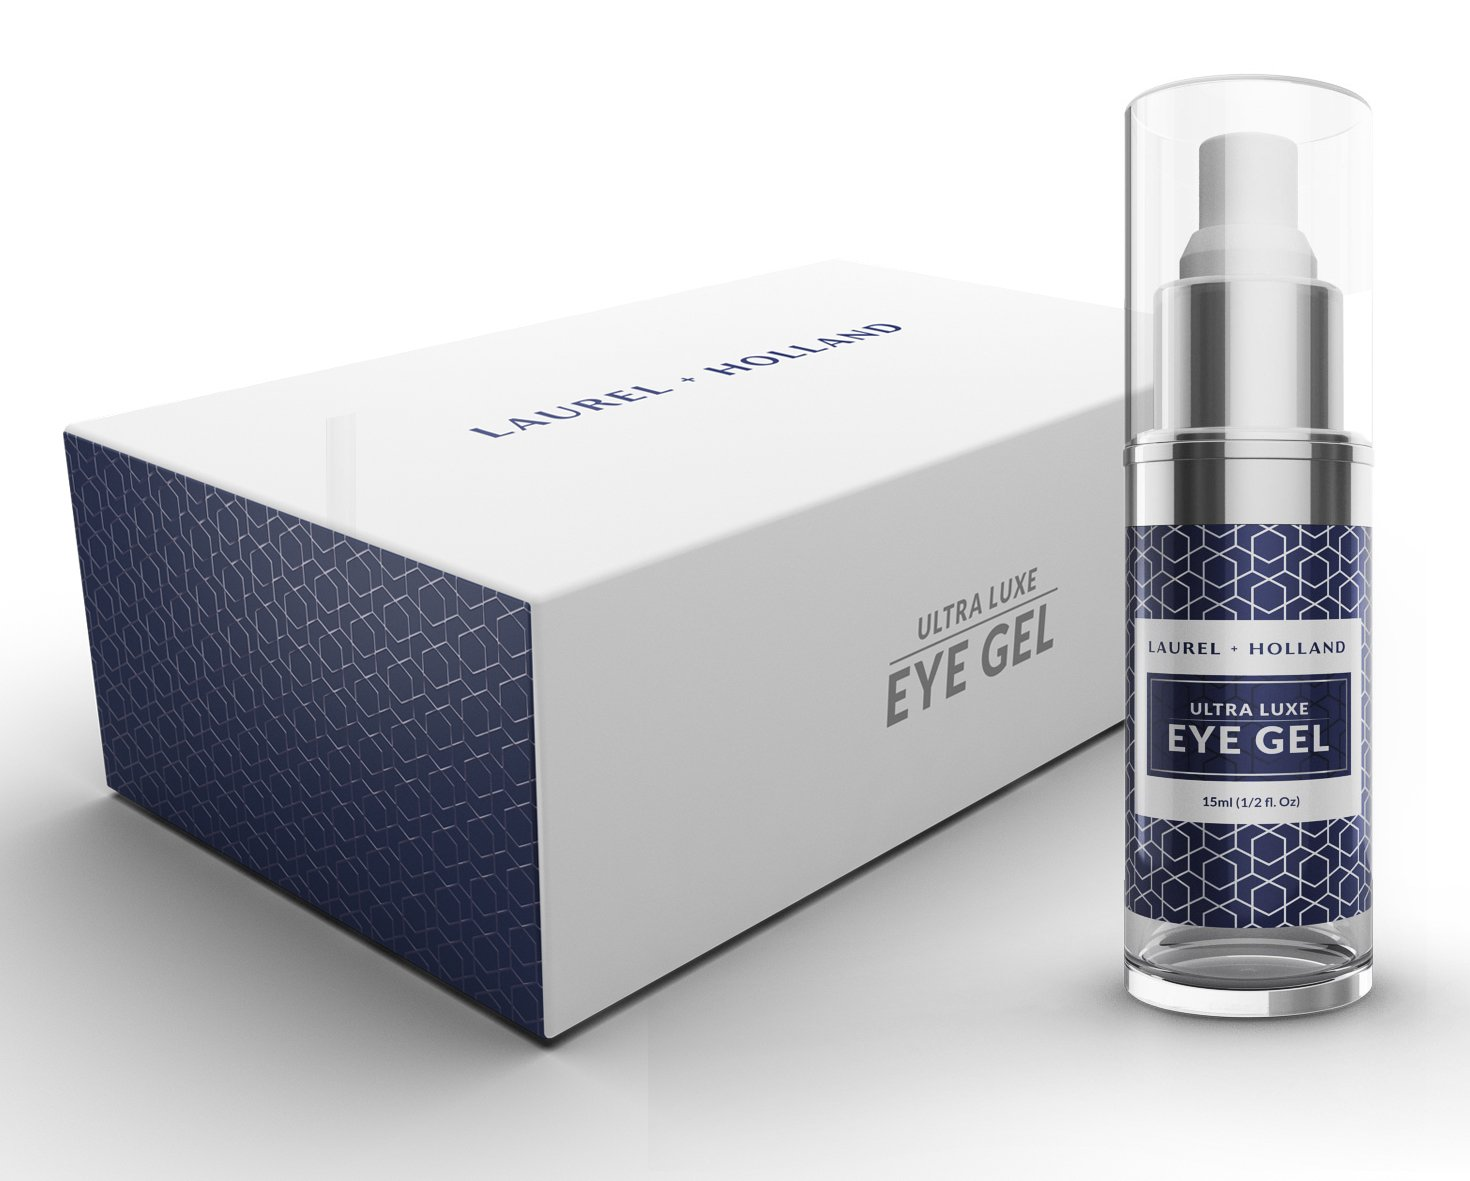 Eye Serum with Matrixyl - Revitalizing Anti Aging Eye Cream Gel Instant Tightening, Firming for Wrinkles, Crow's Feet, Bags, Dark Circles and Puffy Eyes Diminish by LAUREL + HOLLAND